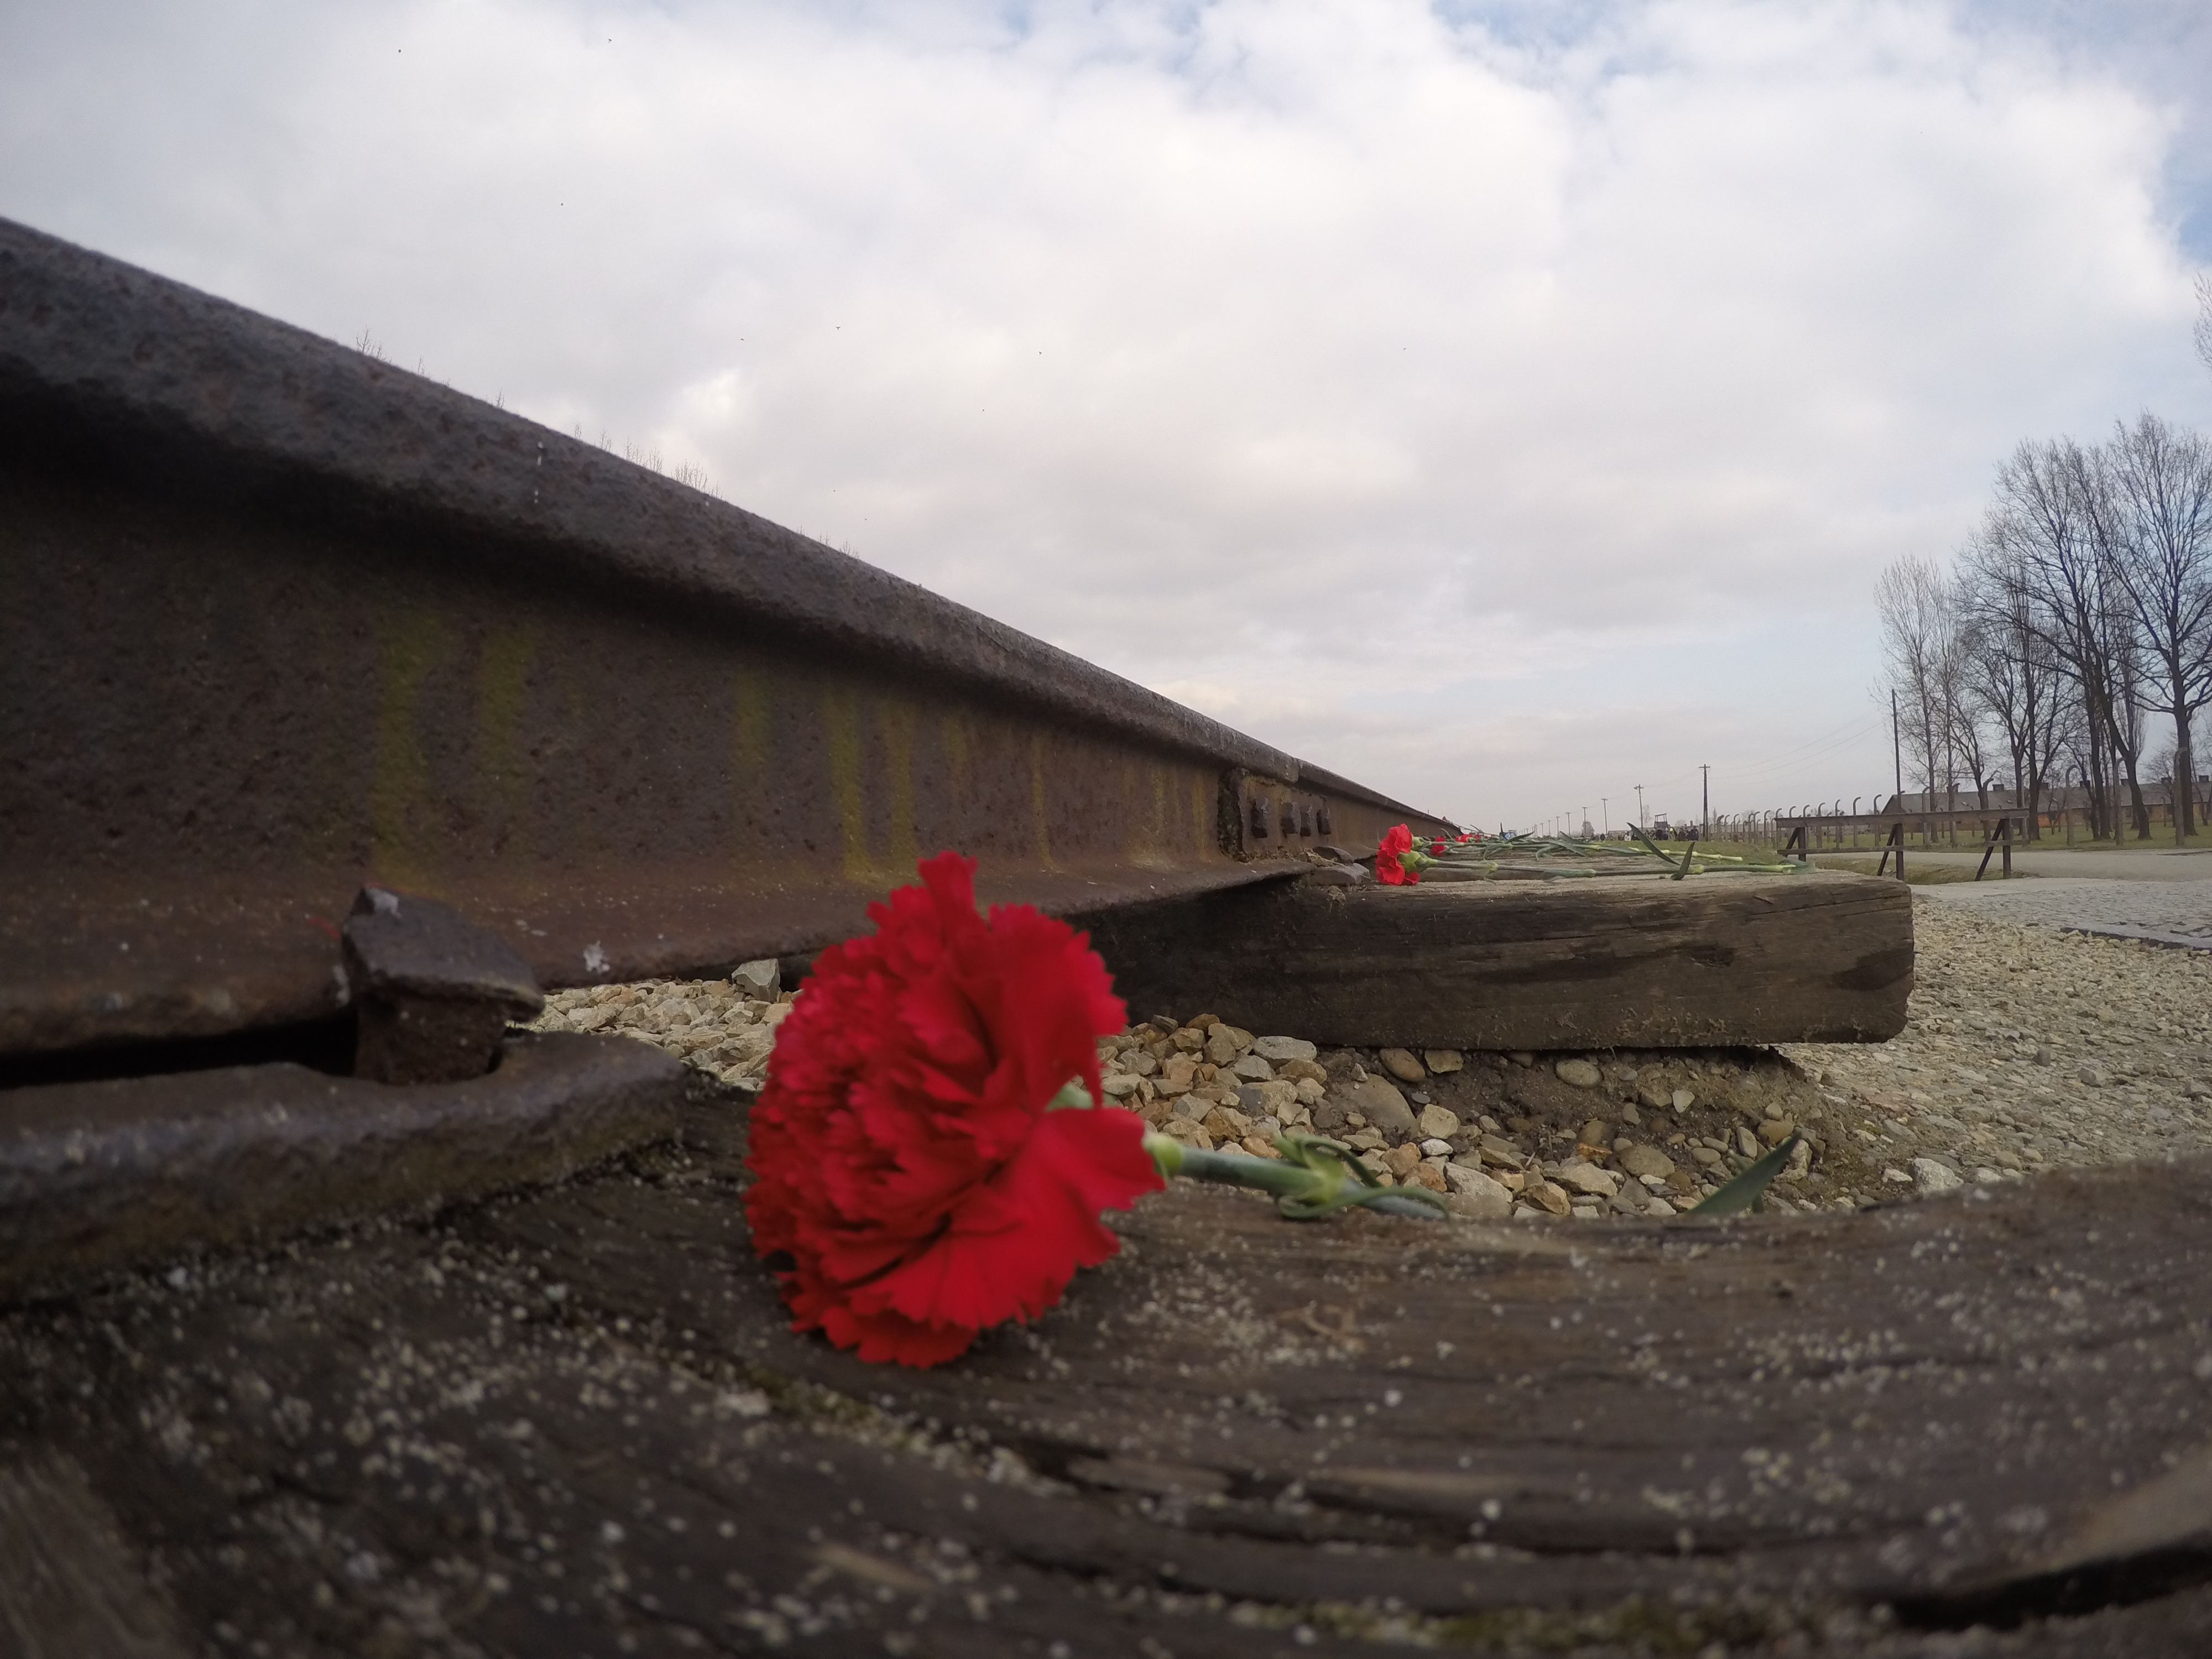 The roses and candles were placed on each wood panel of the tracks